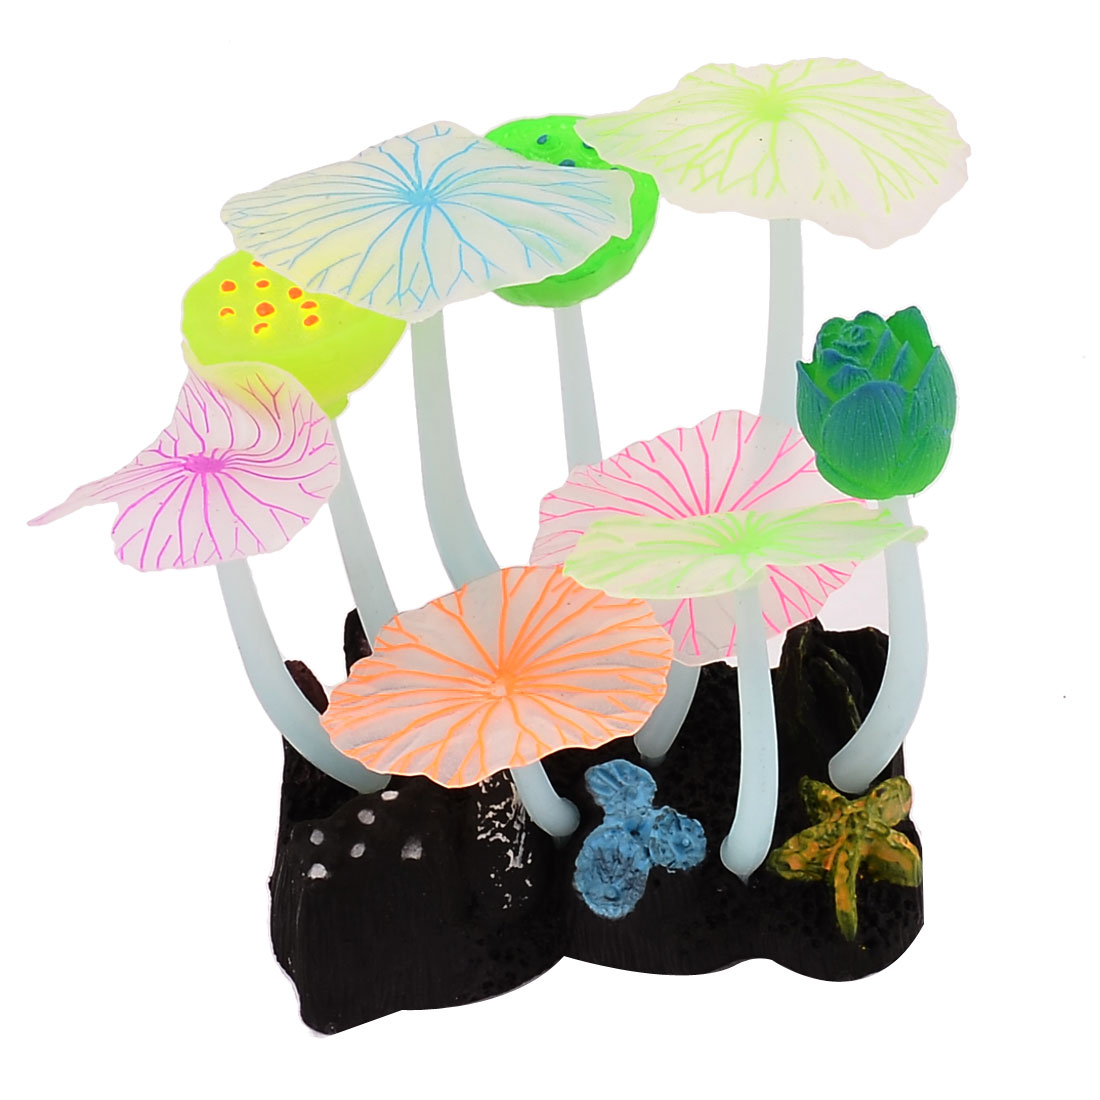 Aquarium Fish Tank Artificial Sucker Lotus Leaves Design Underwater Landscape Plant Ornament Multicolor